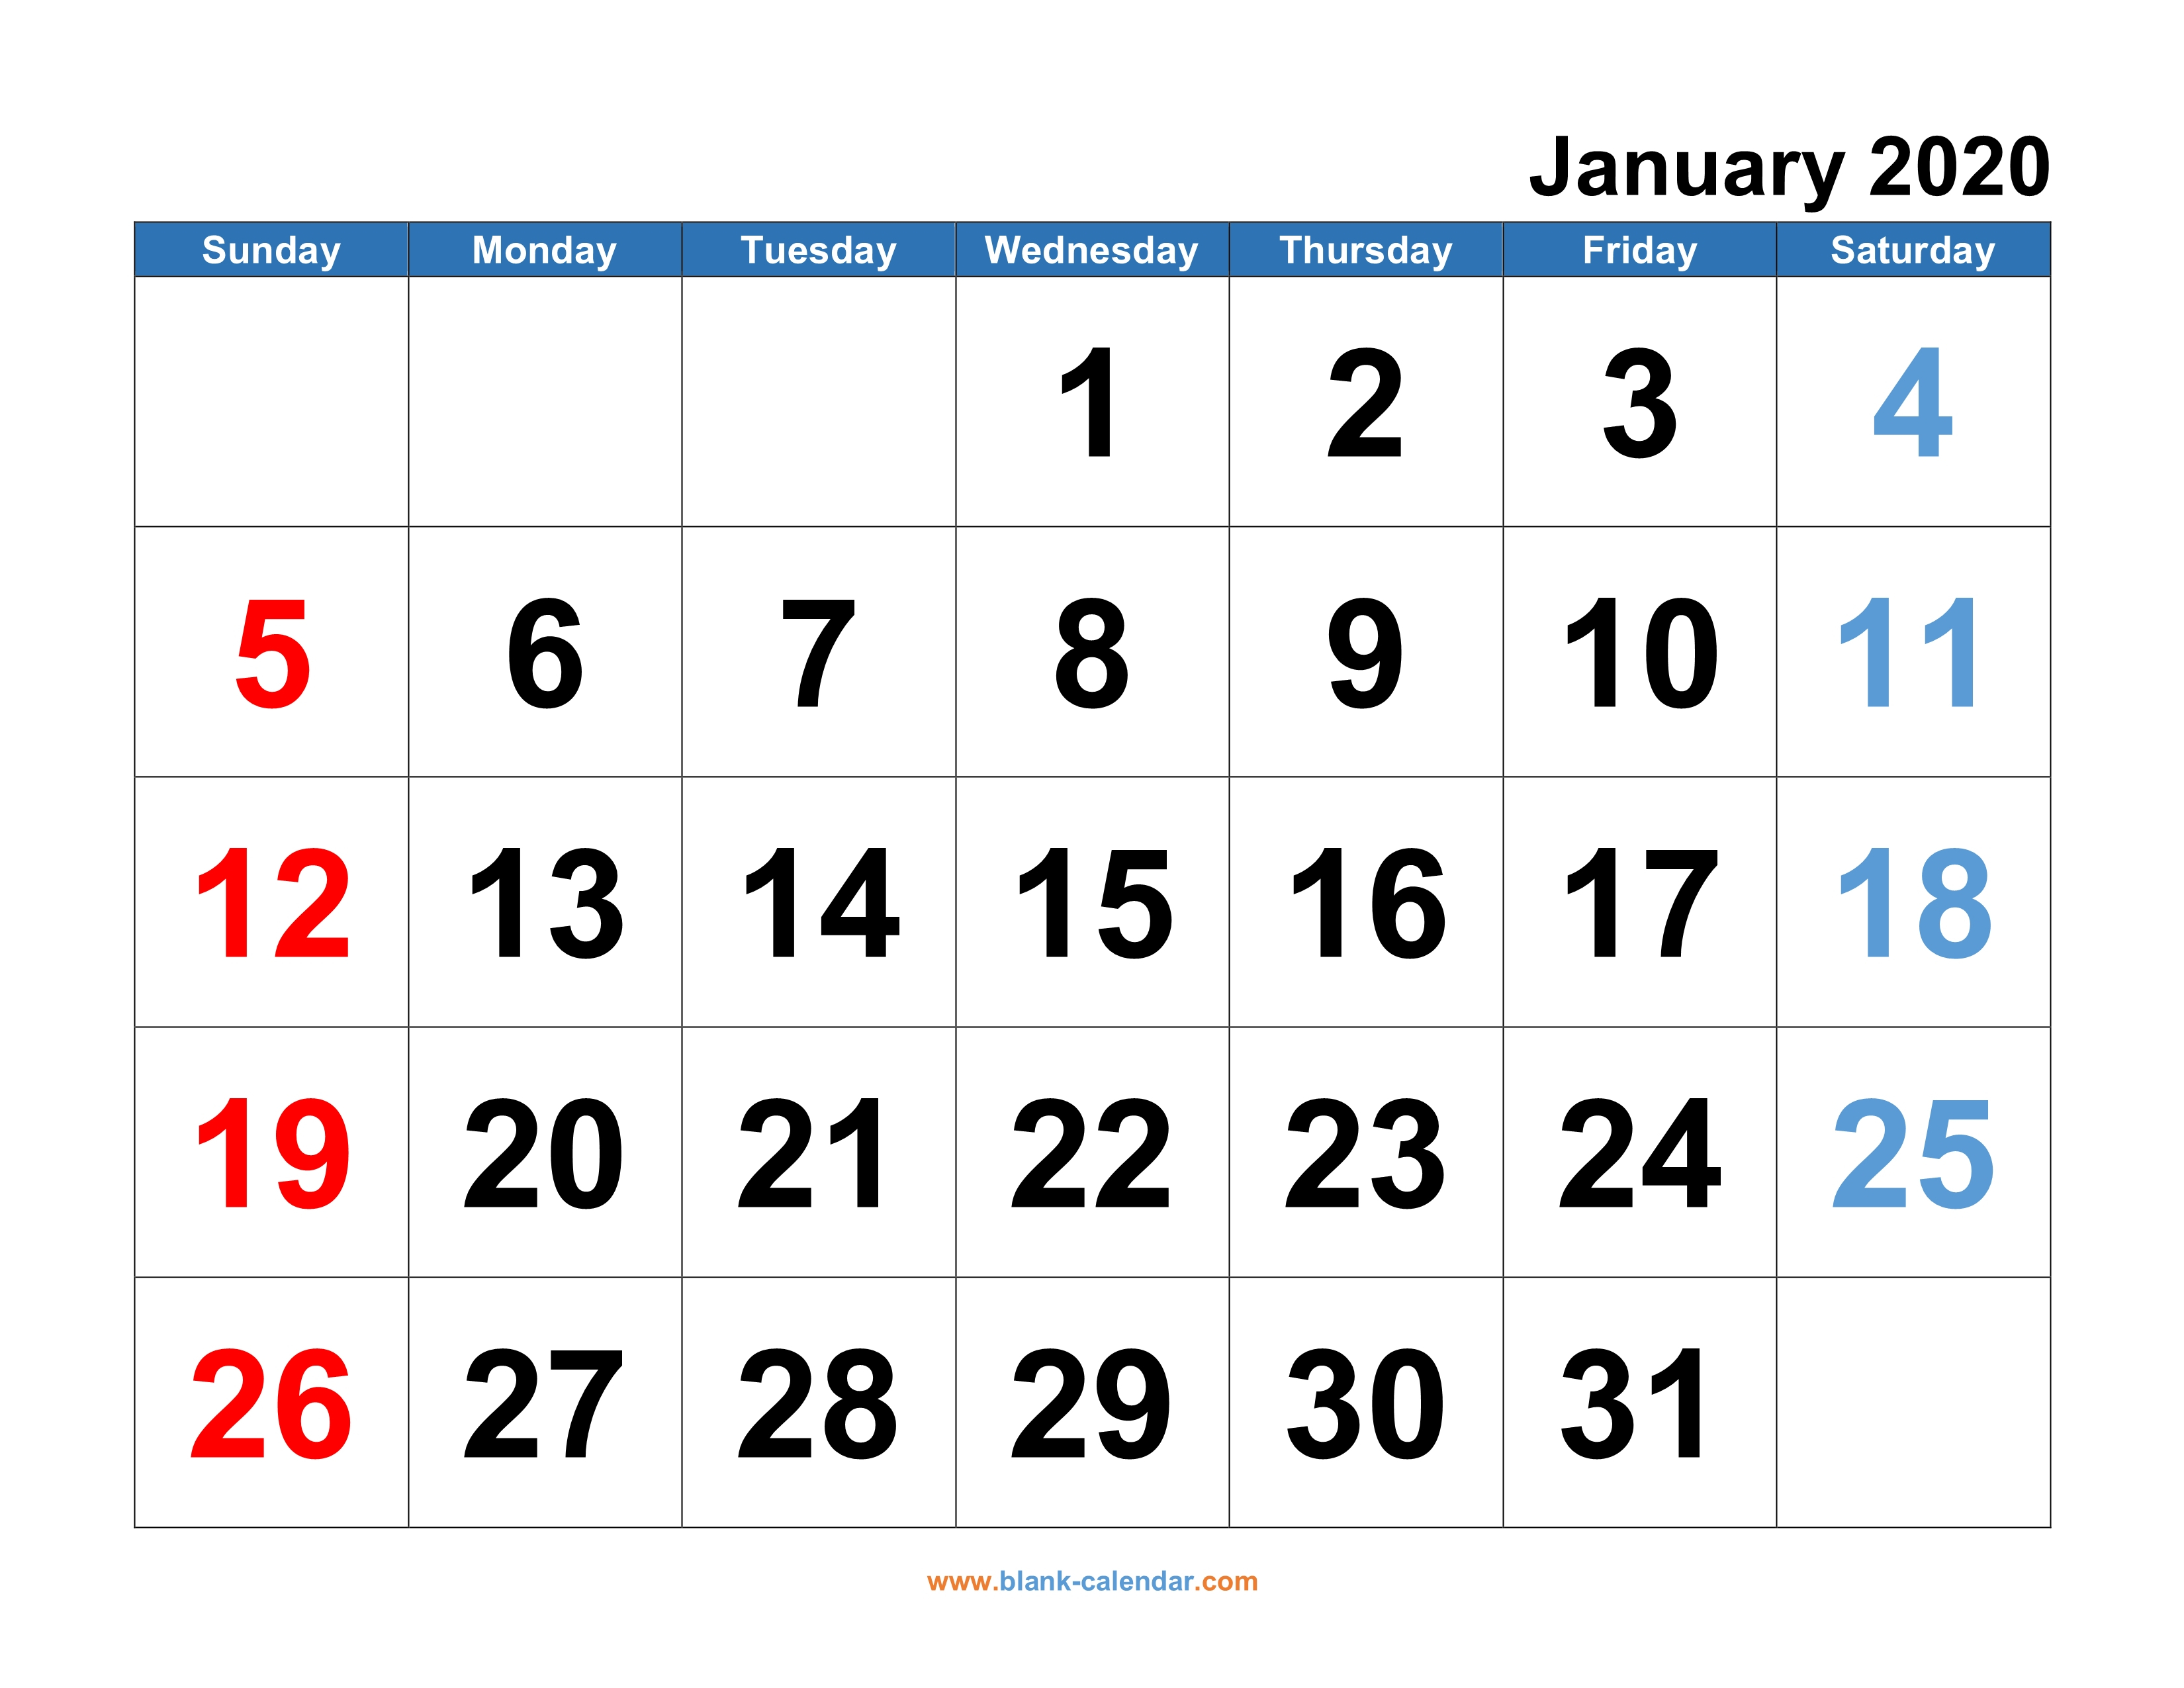 Monthly Calendar 2020   Free Download, Editable And Printable inside 2020 Free Printable Calendar Large Numbers